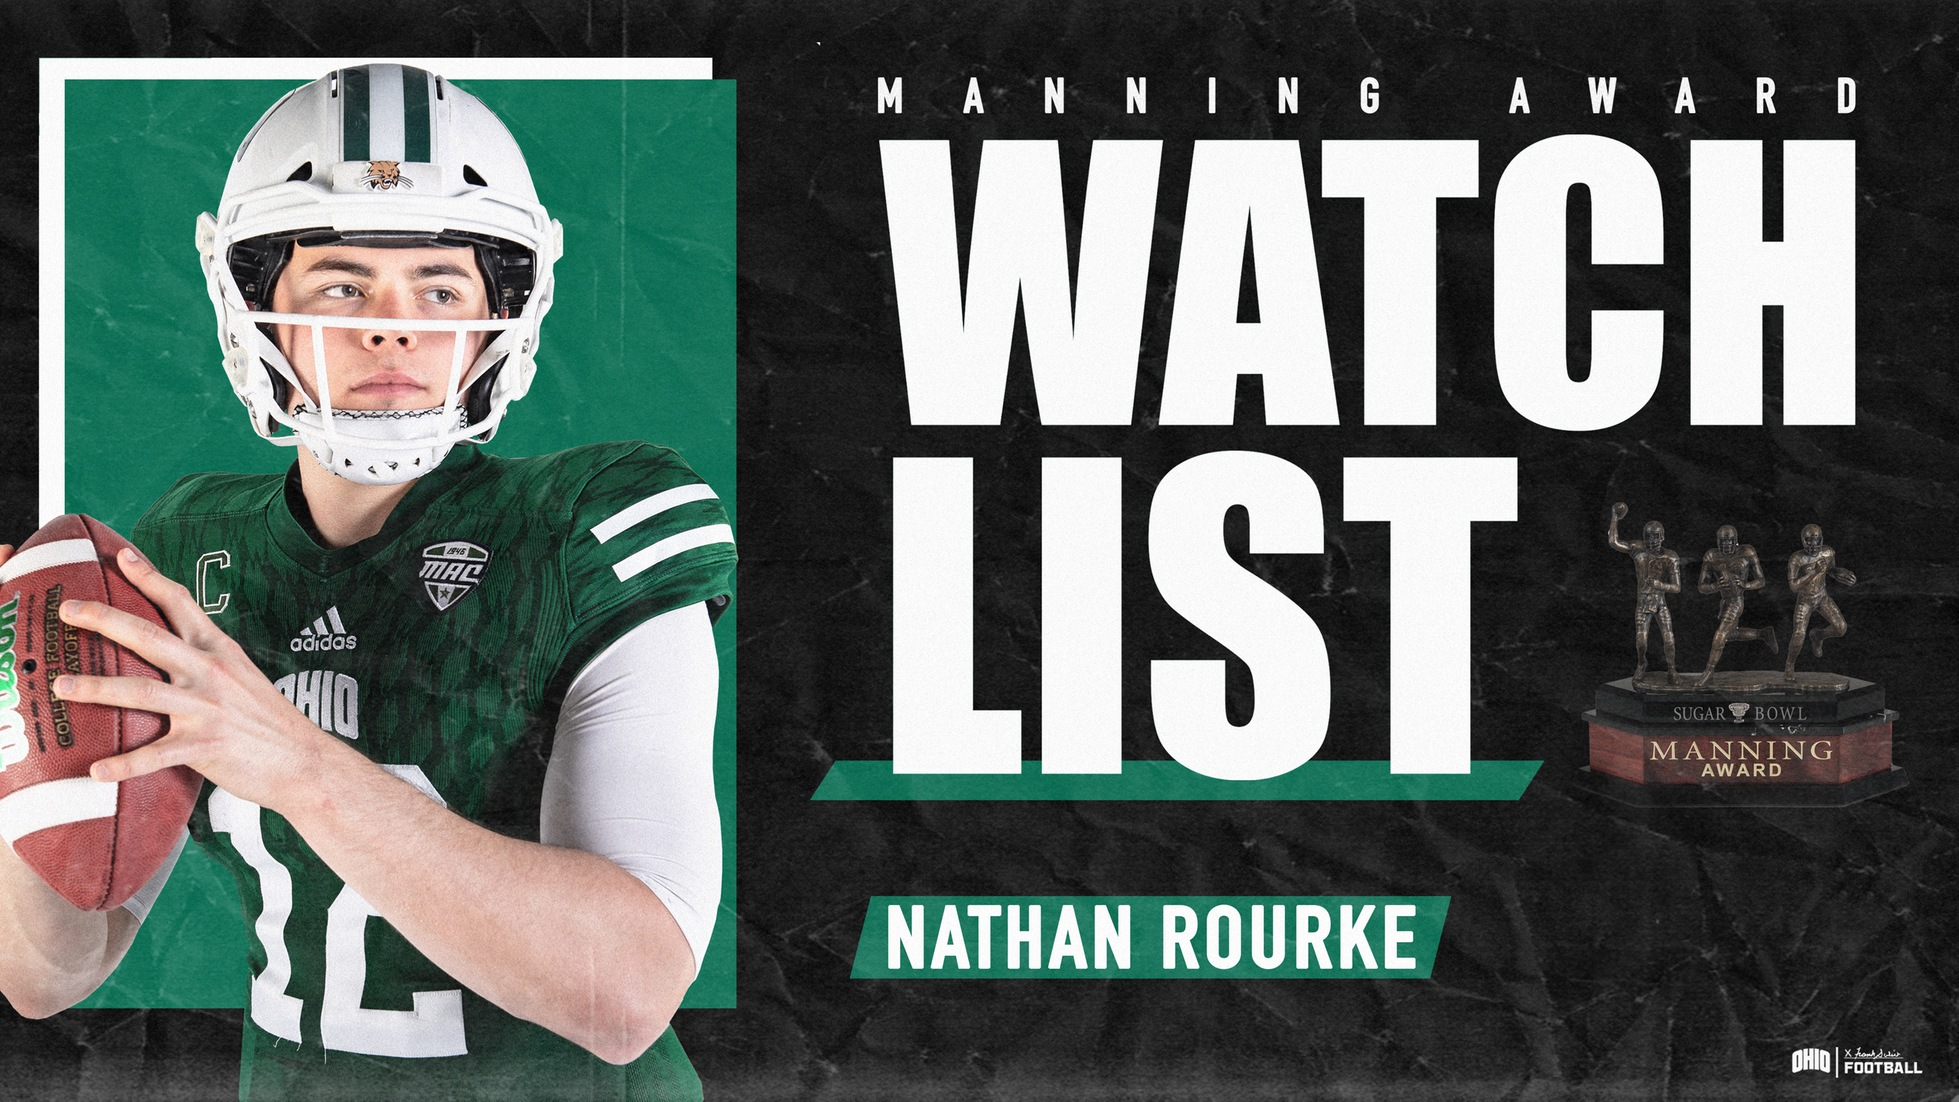 Ohio Football's Rourke Named To 2019 Manning Award Watch List